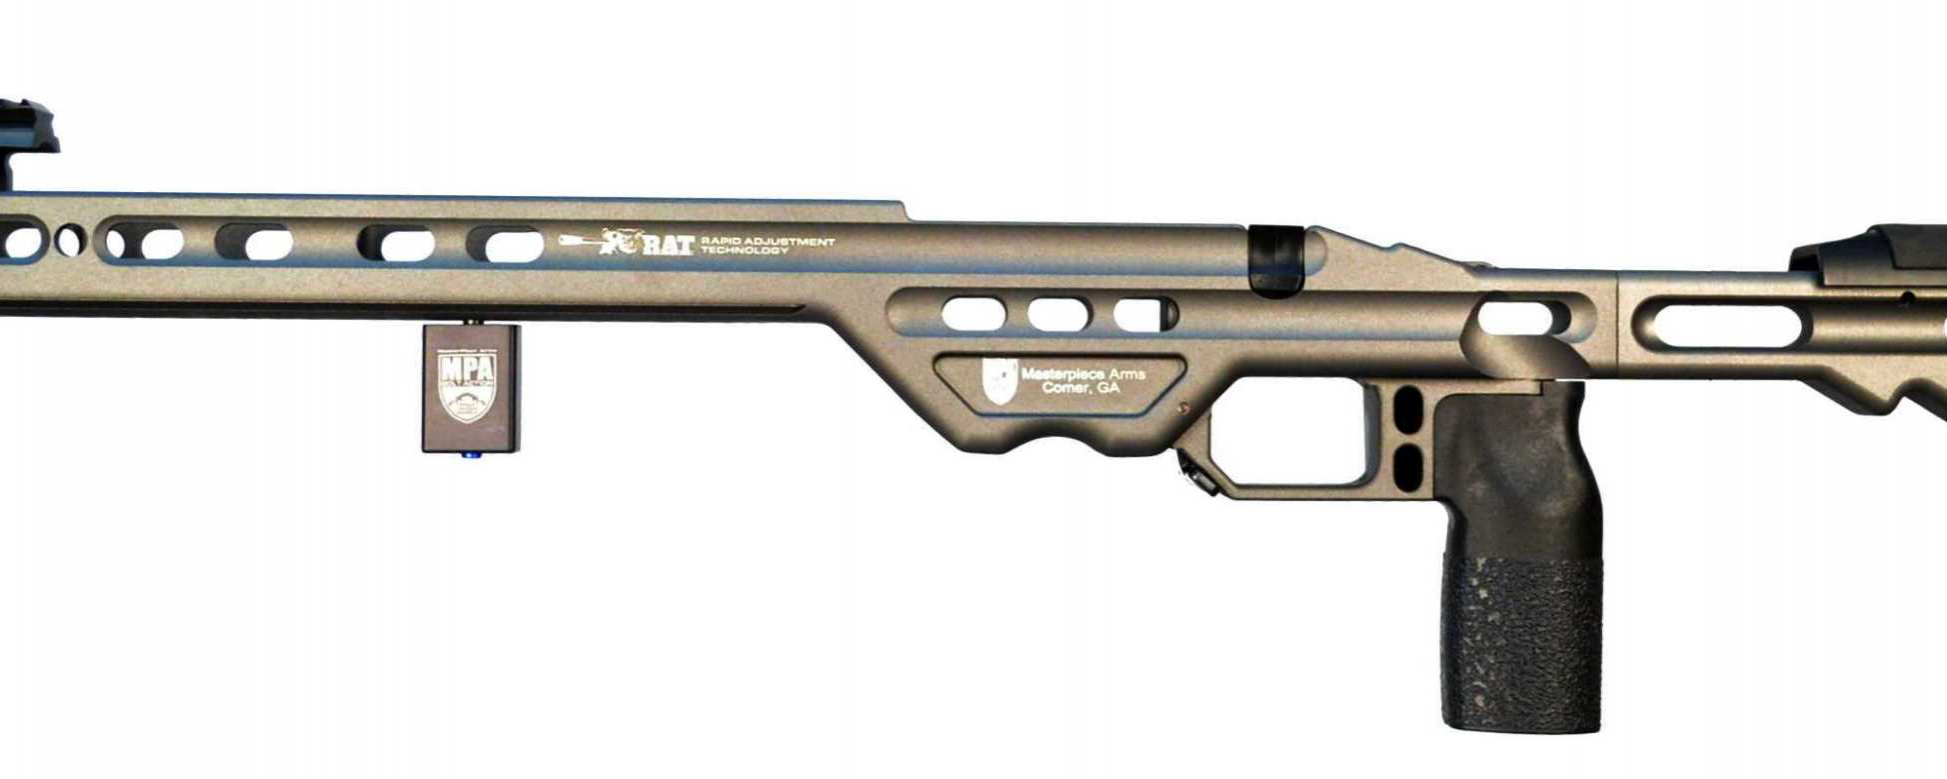 MasterPiece Arms (MPA) Named Official Chassis of the 2019 Precision Rifle Series (PRS) Season for Third Consecutive Year